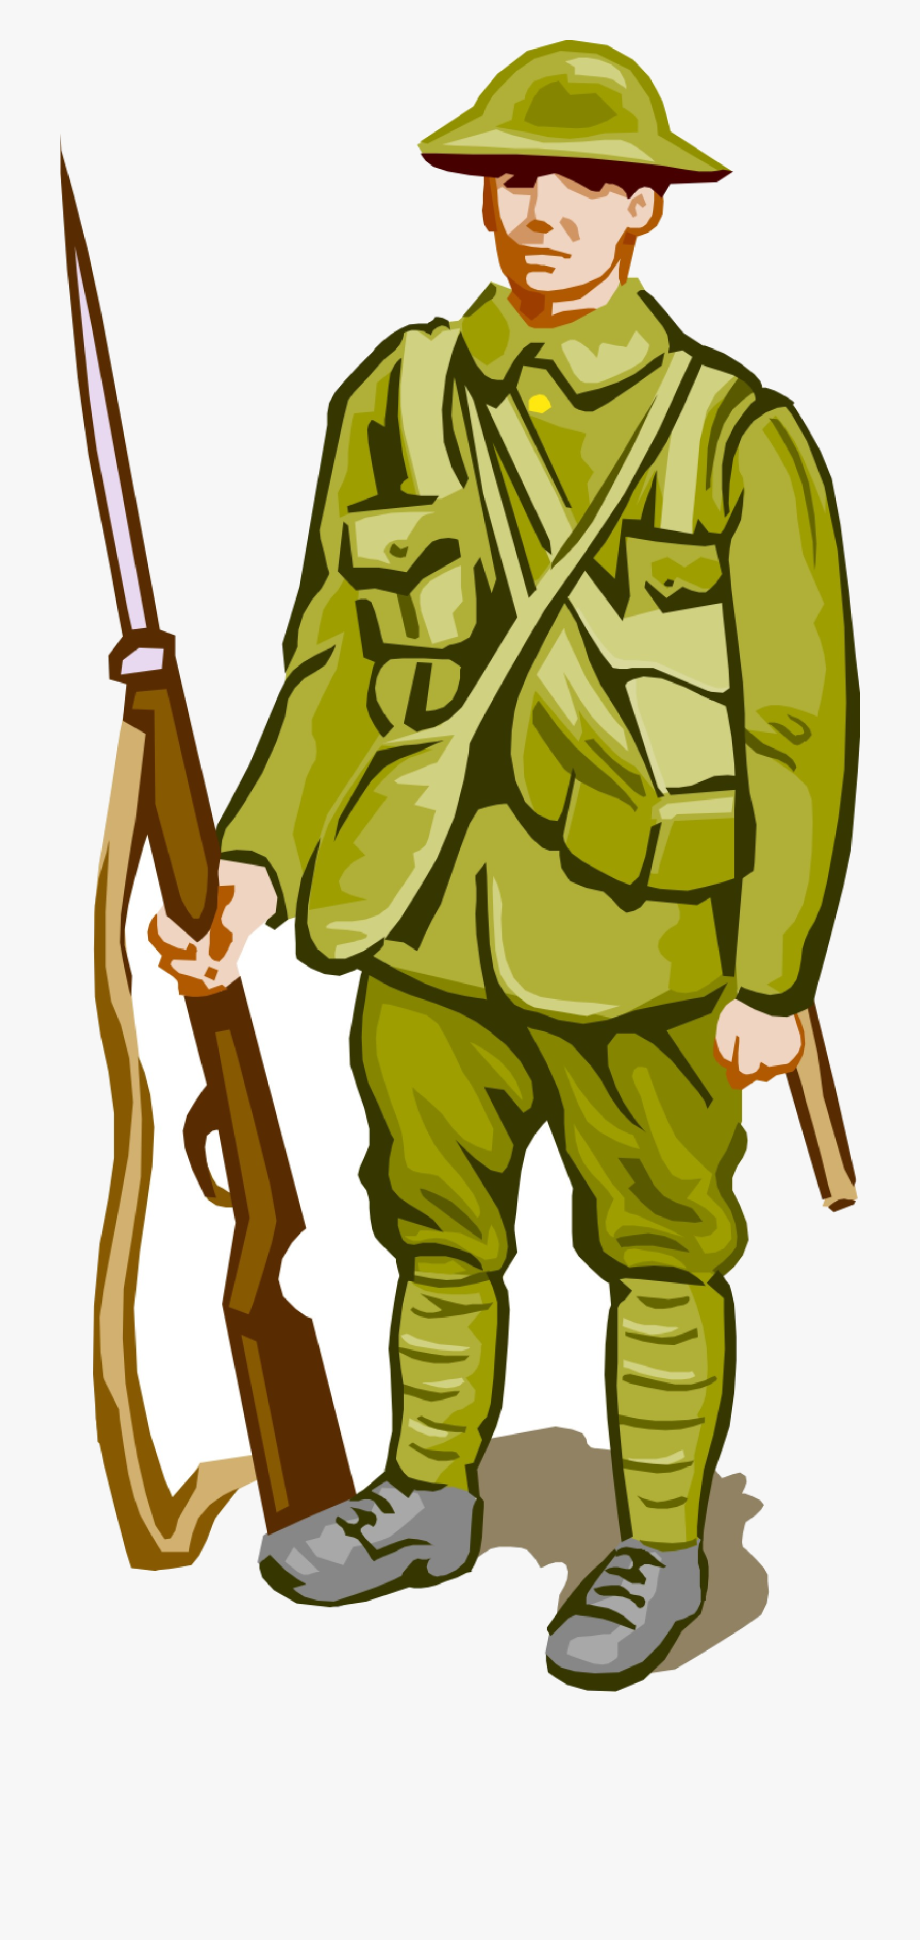 Soldier Free American Cliparts Clip Art Transparent.